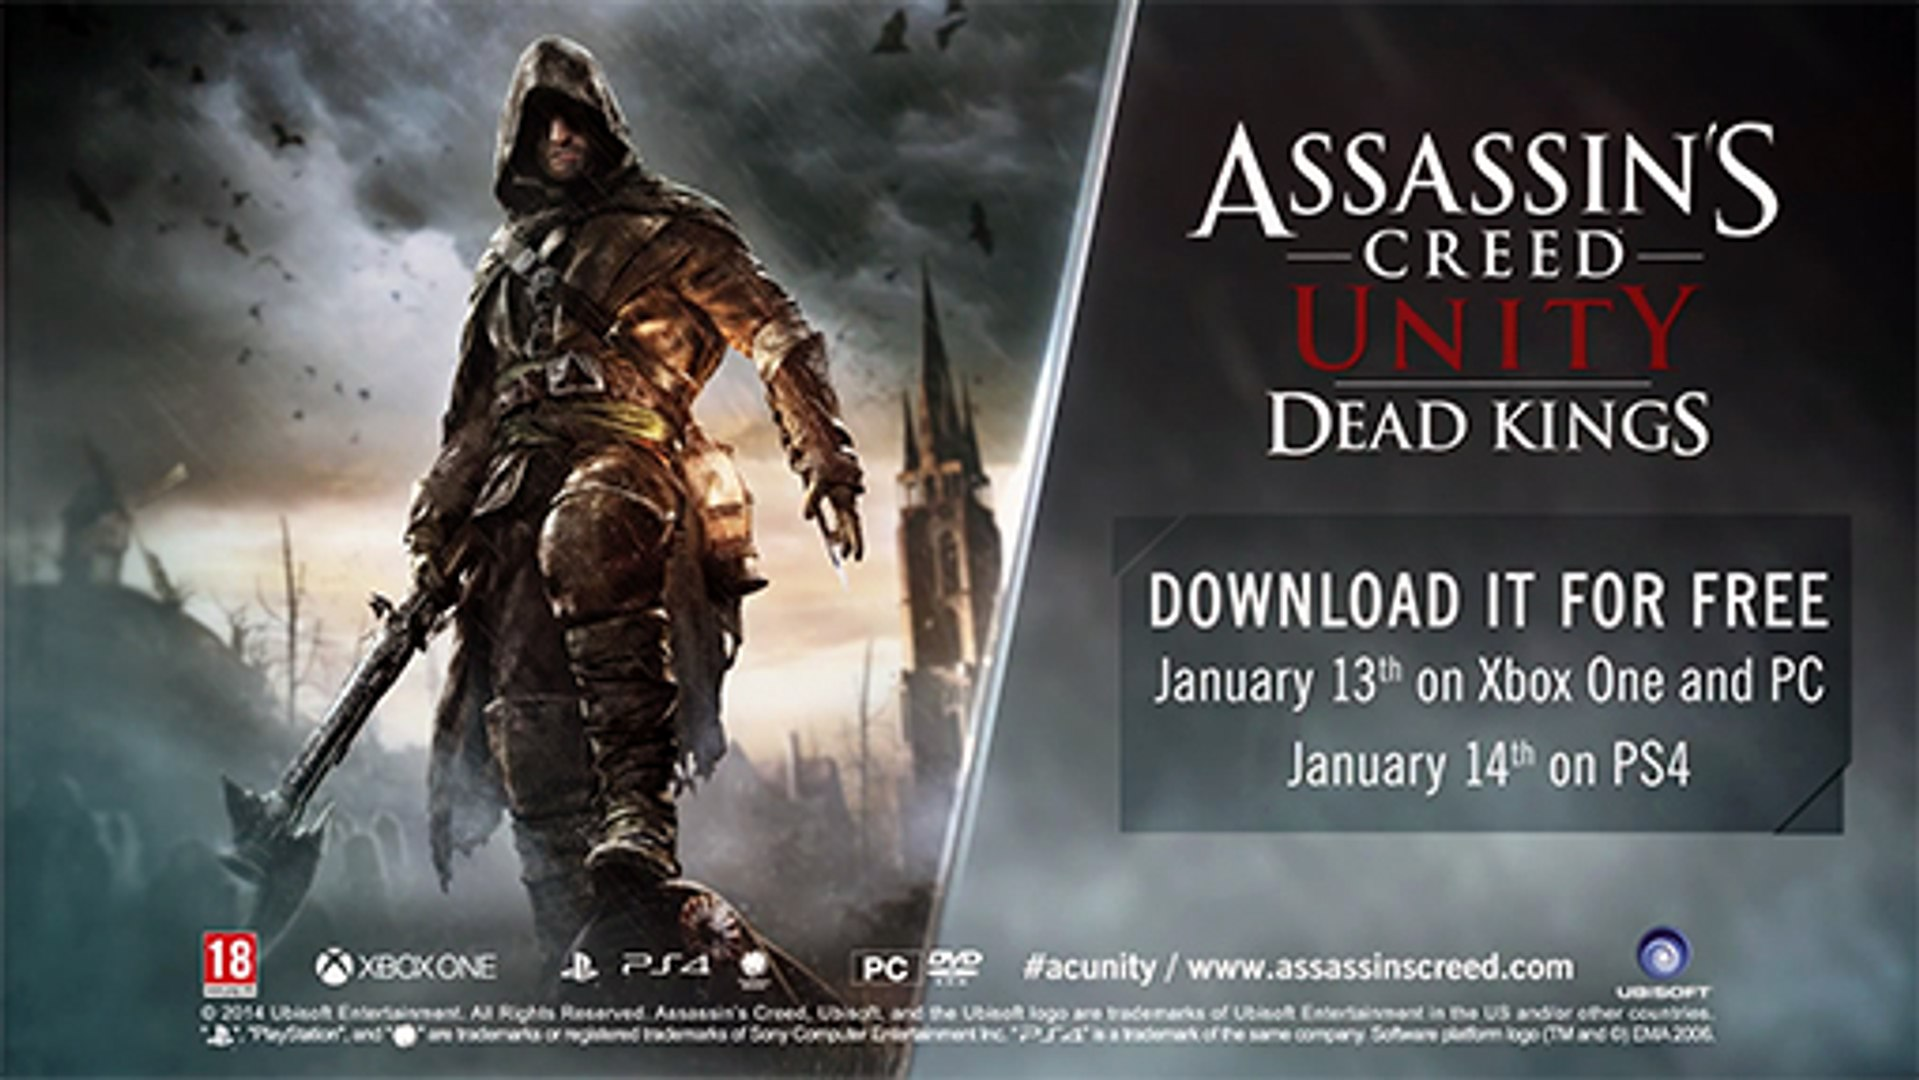 Assassin S Creed Unity Dead Kings Dlc Gameplay Trailer Ps4 Xbox One Full Hd Video Dailymotion